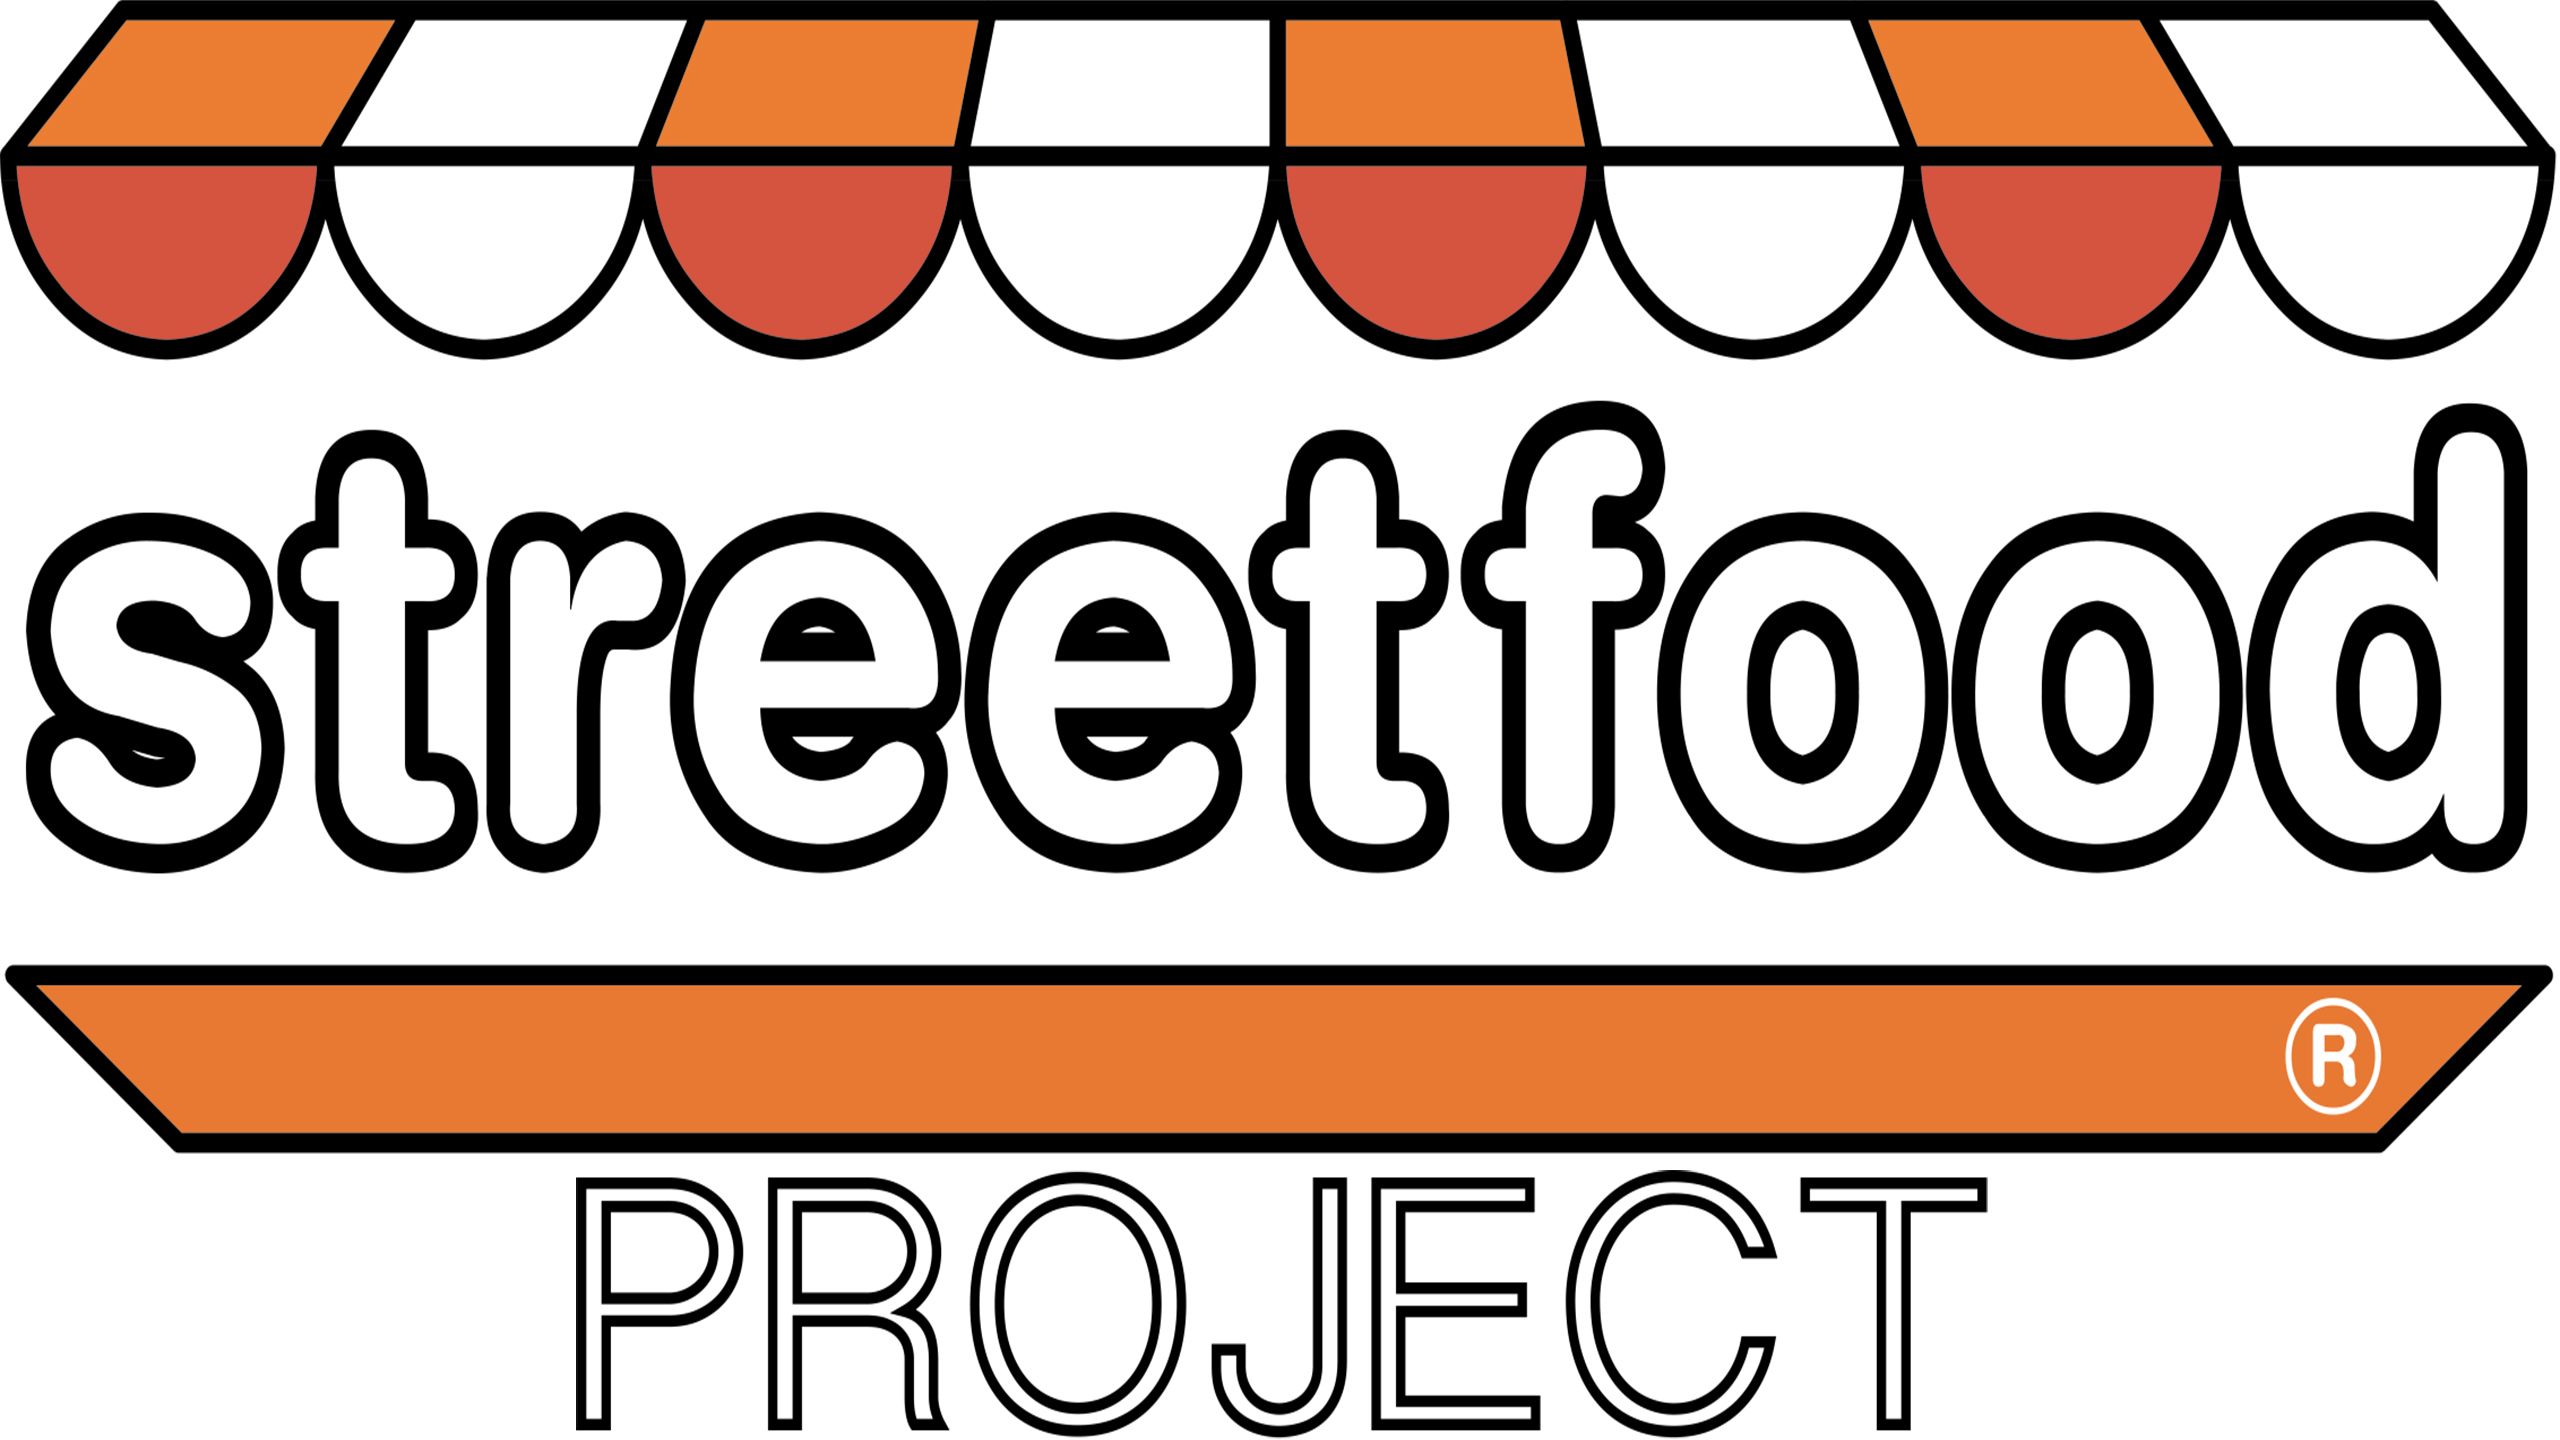 images/profiles/320-Street Food Project Logo.jpg